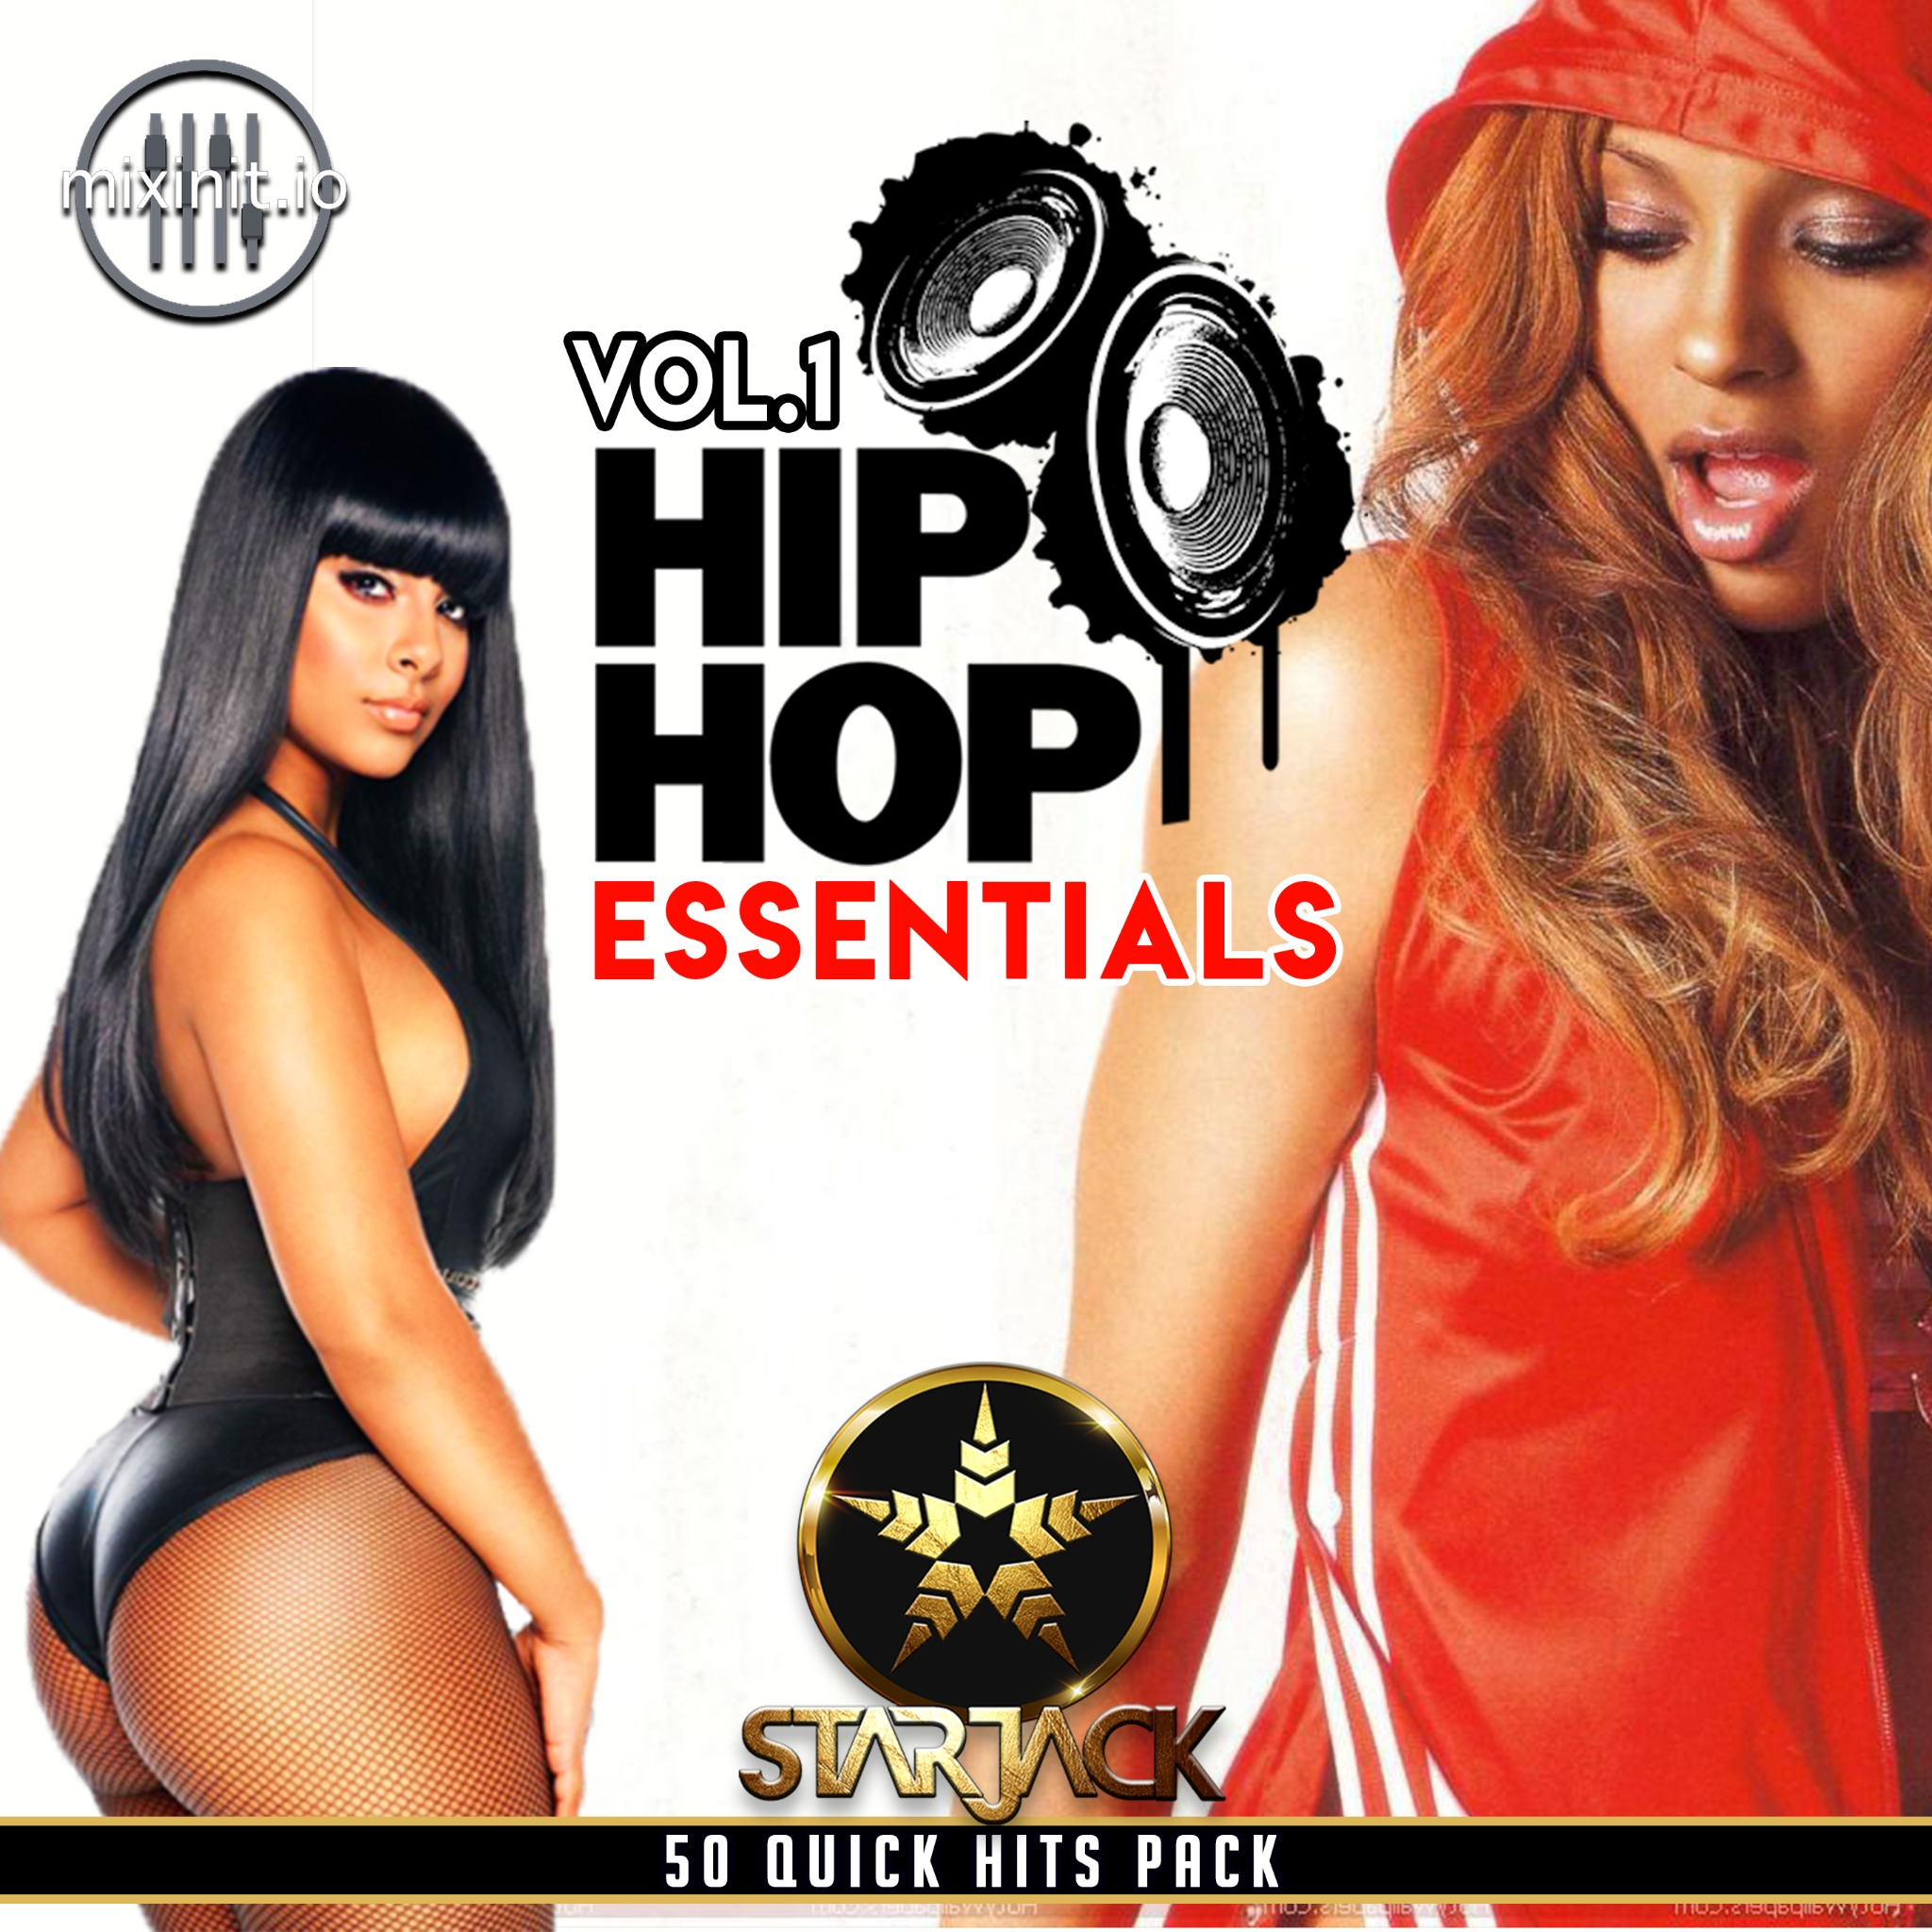 Starjack - Hip Hop Essentials Vol. 1